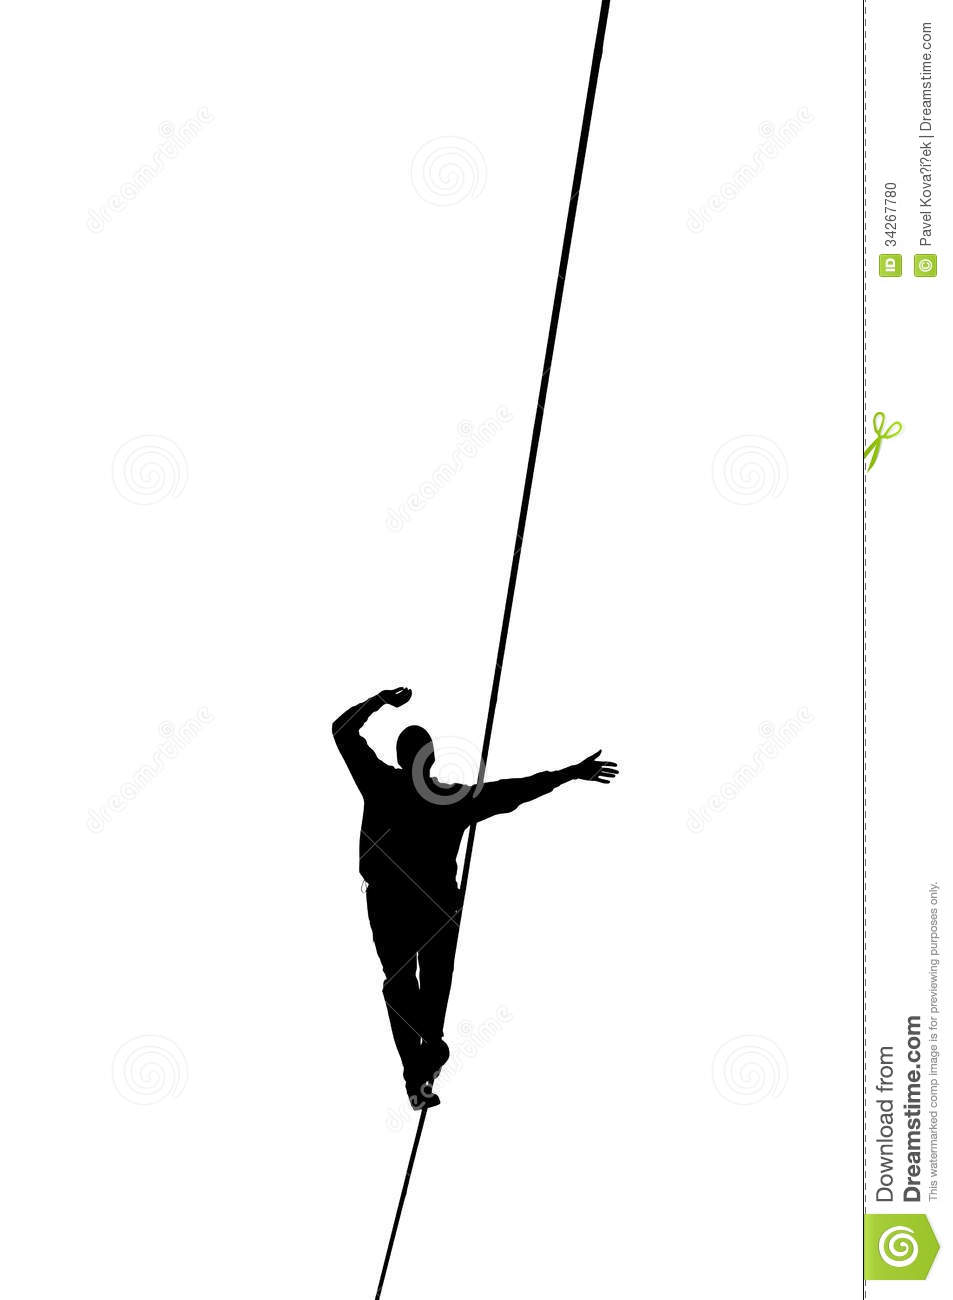 Slackline Stock Photo.